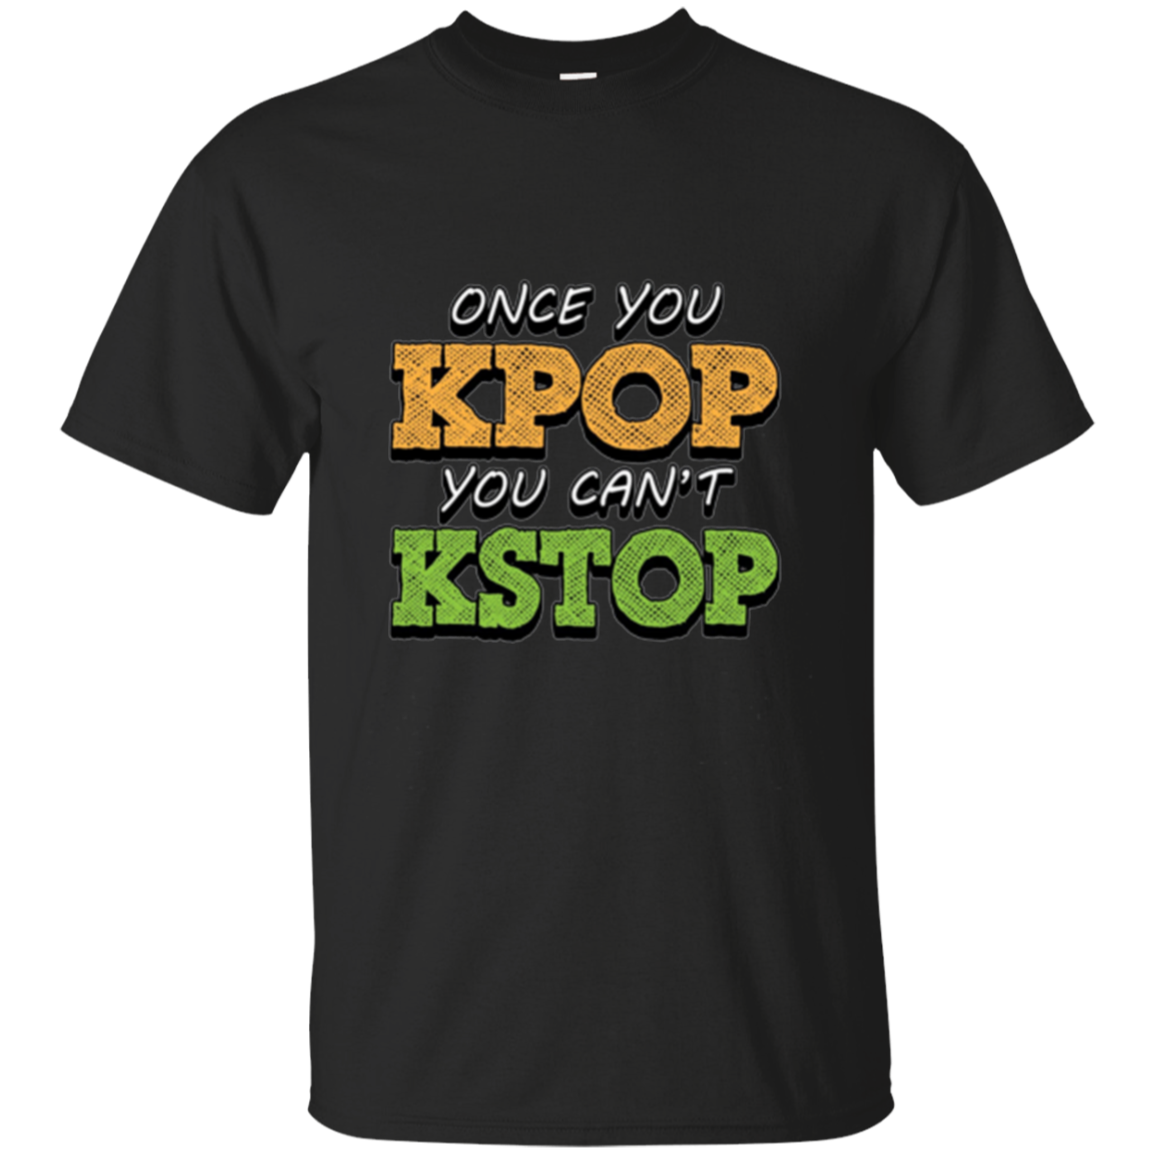 Kpop shirt- Once You Kpop You Can't Kstop Long Sleeved Shirt